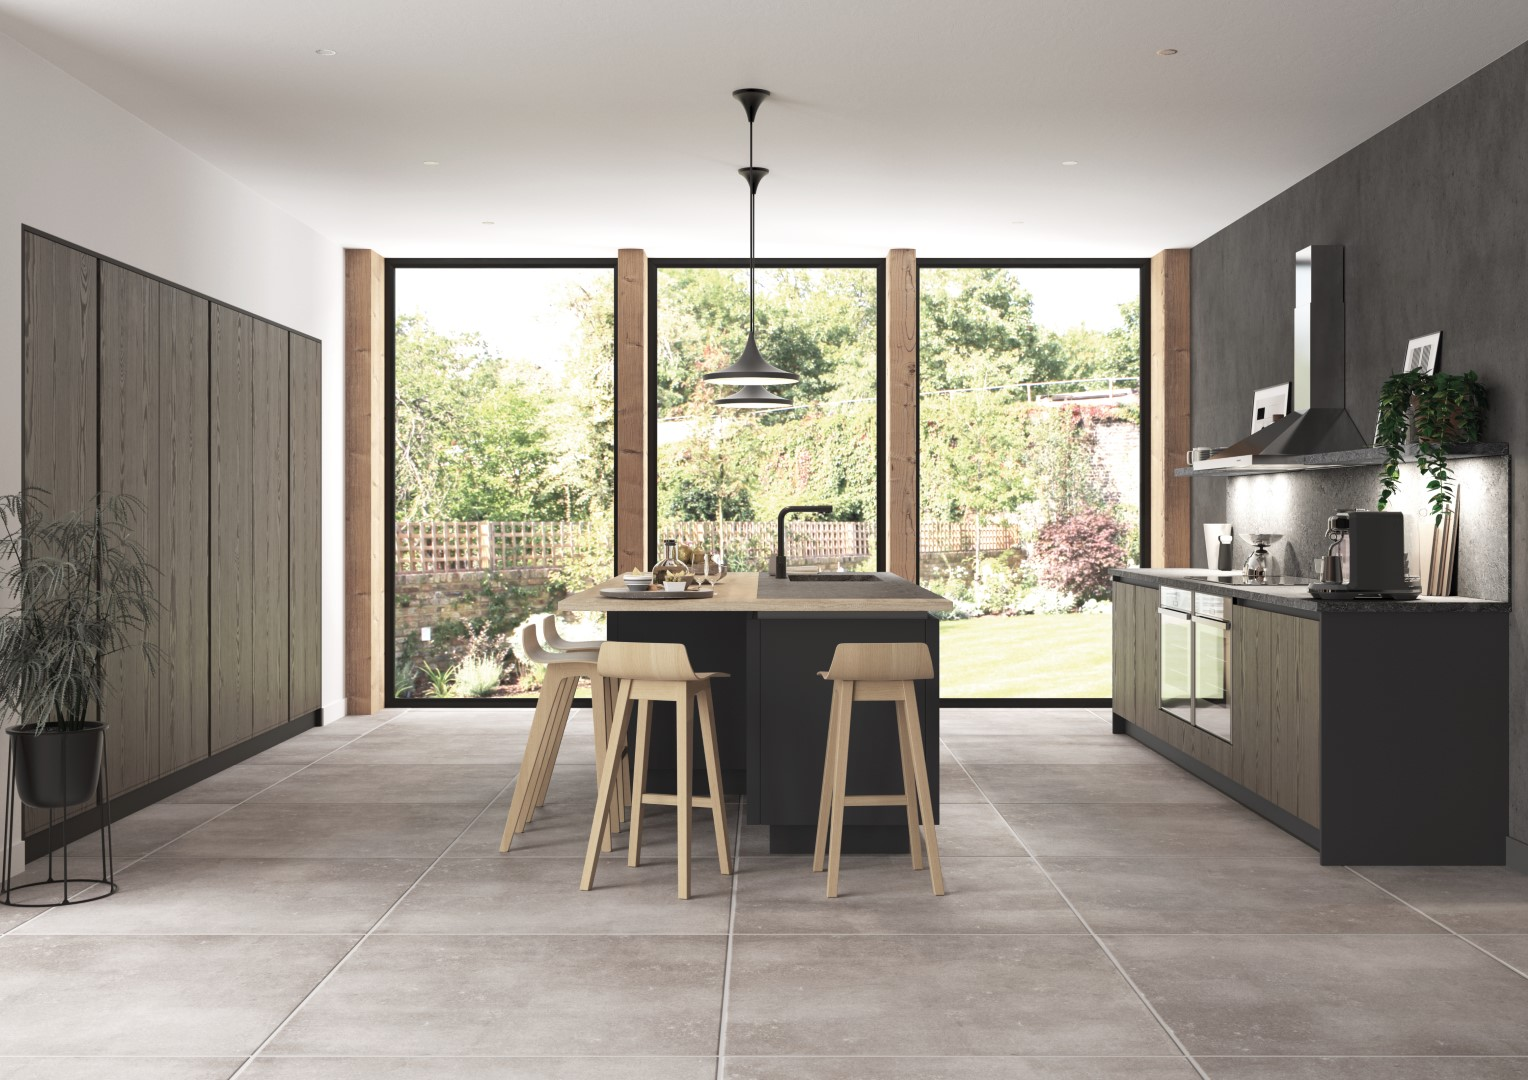 Kelso stained Truffle Grey and Zola Matte Graphite - Kitchen Design - Alan Kelly Kitchens - Waterford - 5